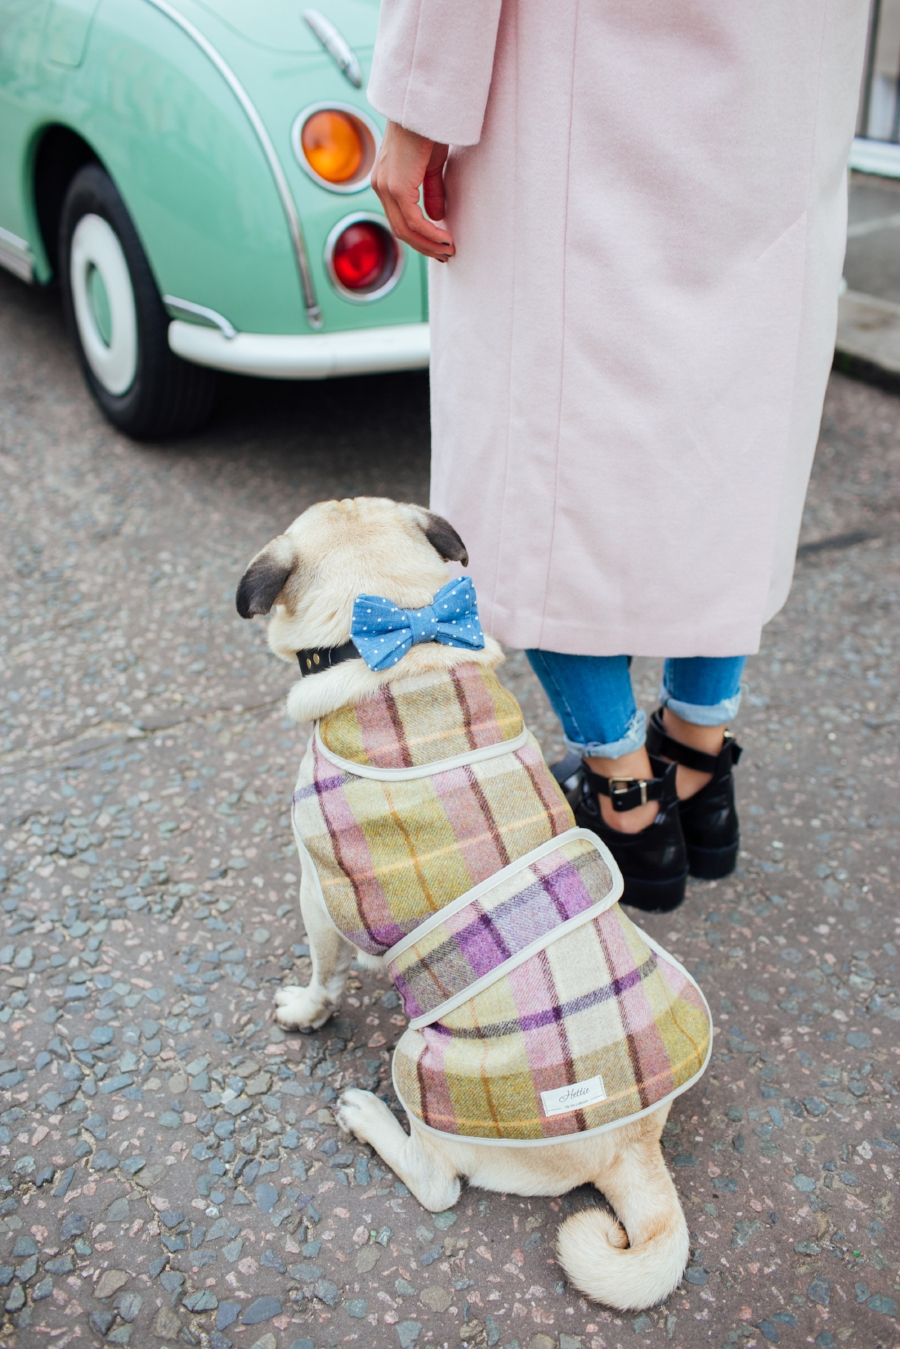 dogblog-london-bestdogbloginlondon-dogfashion-dogfashionblog-fashionandlifestyle-streetstyle-pugswag-humanandhound-pink-fallfashion-falltrends-dogsinclothes-dapperdogs-pug-puglife-bestdressedpug-fashionblogger-newyork-uk-pinkwintercoat-puglife-twinning-bestdressedpug-awesome-best-bestdogbloglondon-dogfashionlondon-coolestdogblog-cooldogs-vintagecar-mint  -topdogbloglondon-bestdogblog